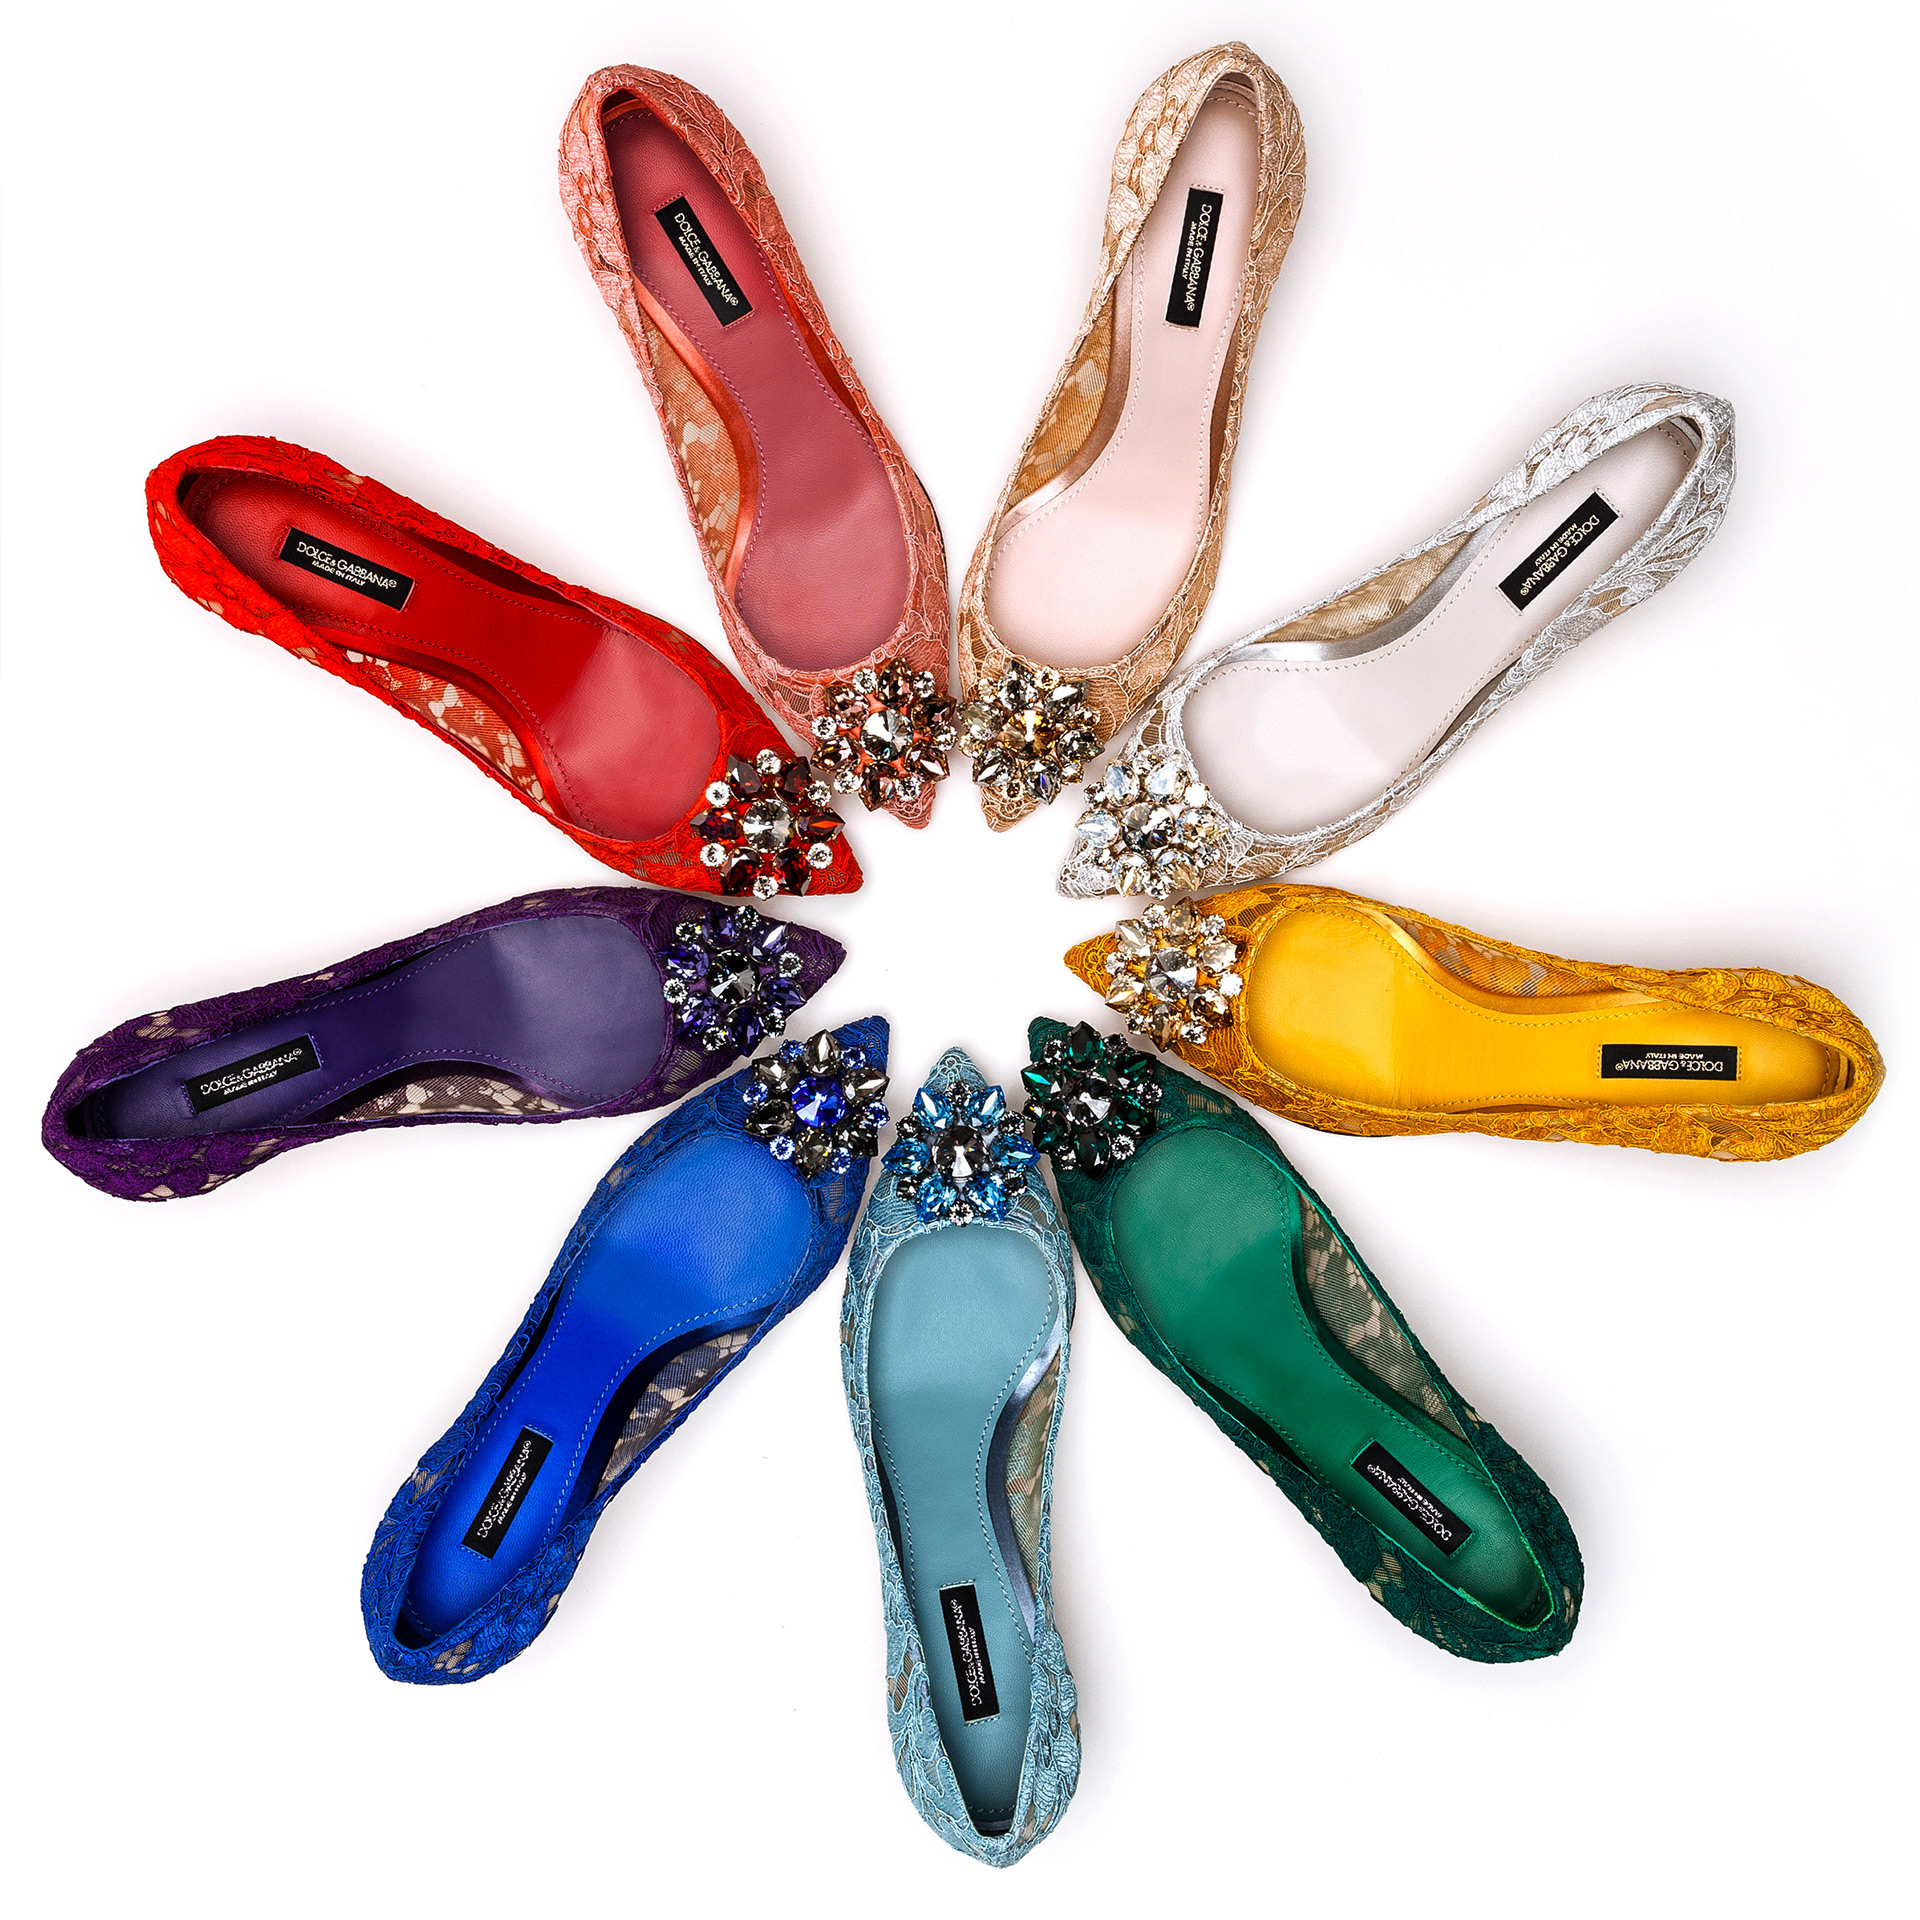 dolce-gabbana-rainbow-lace-collection-scarpe-magazine